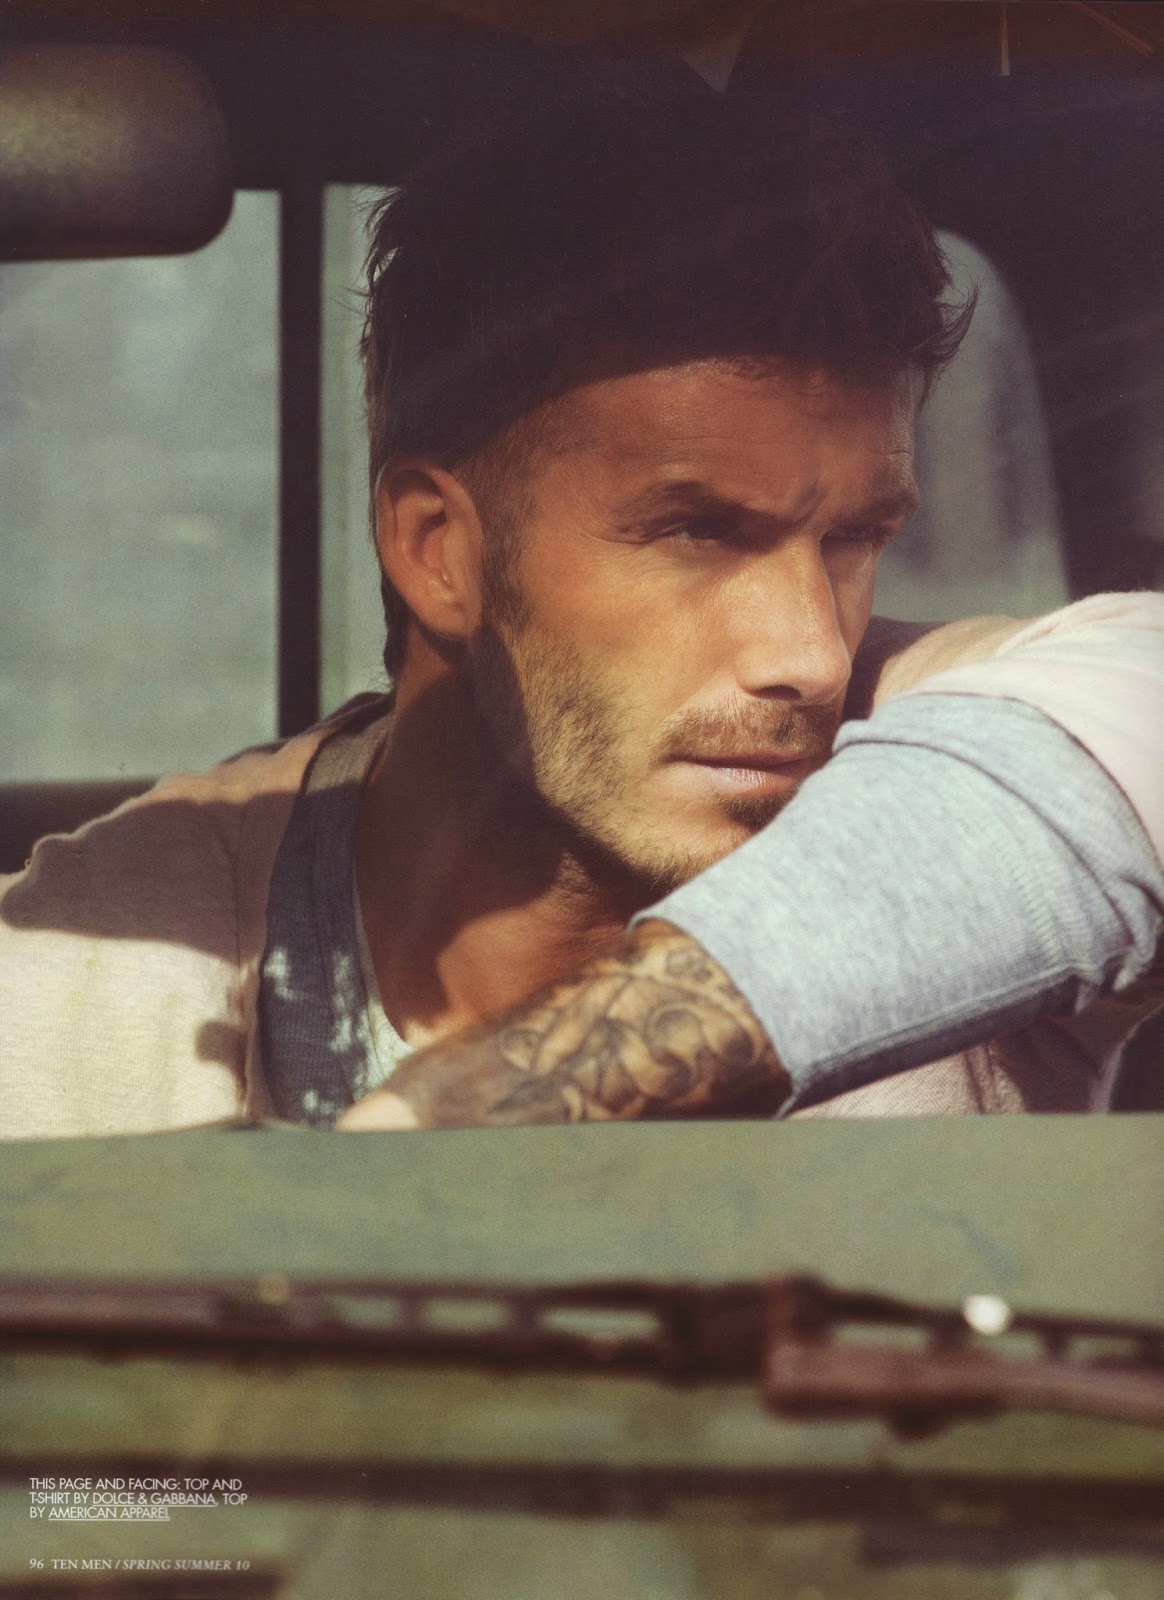 David Beckham 2010 Photoshoot In a Truck